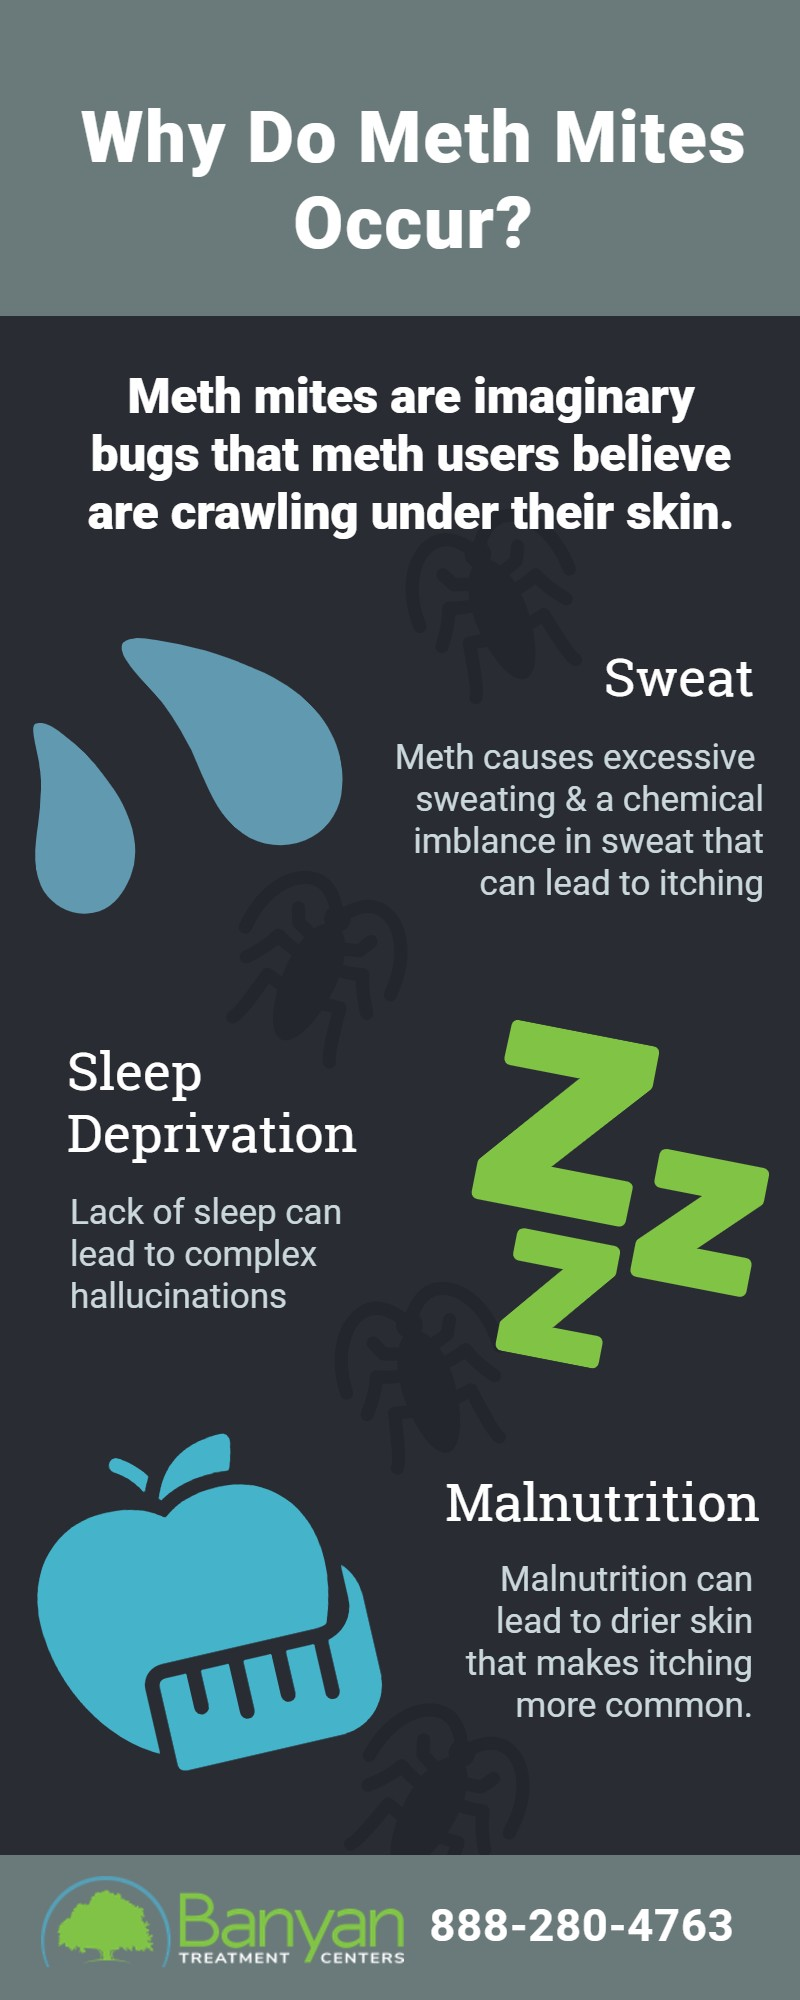 What Are Meth Mites & Why Do They Occur?